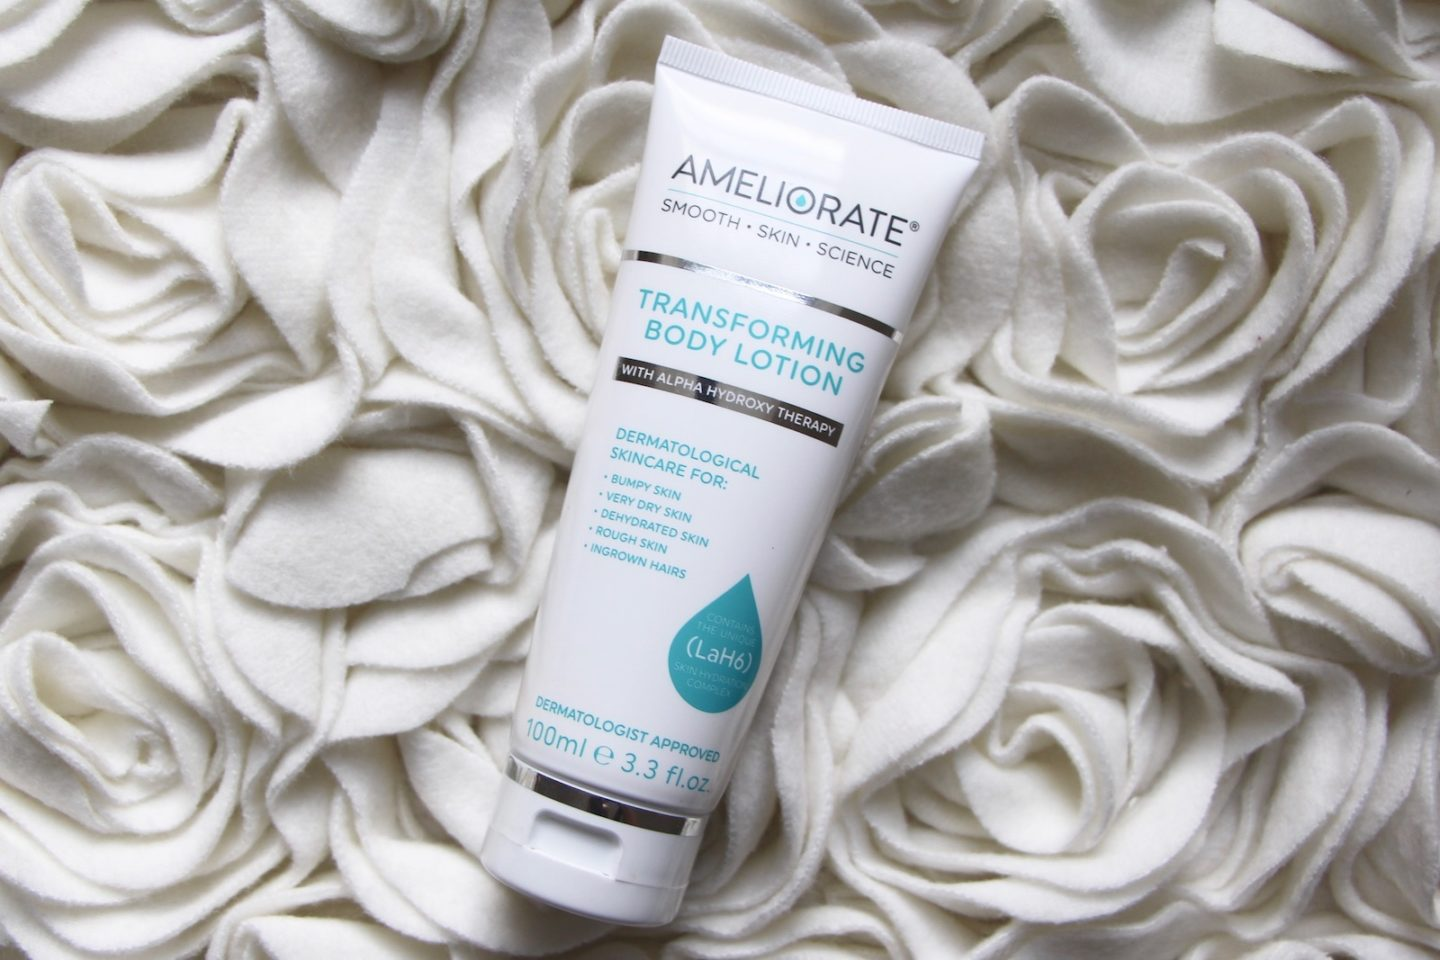 Ameliorate Transforming Body Lotion review